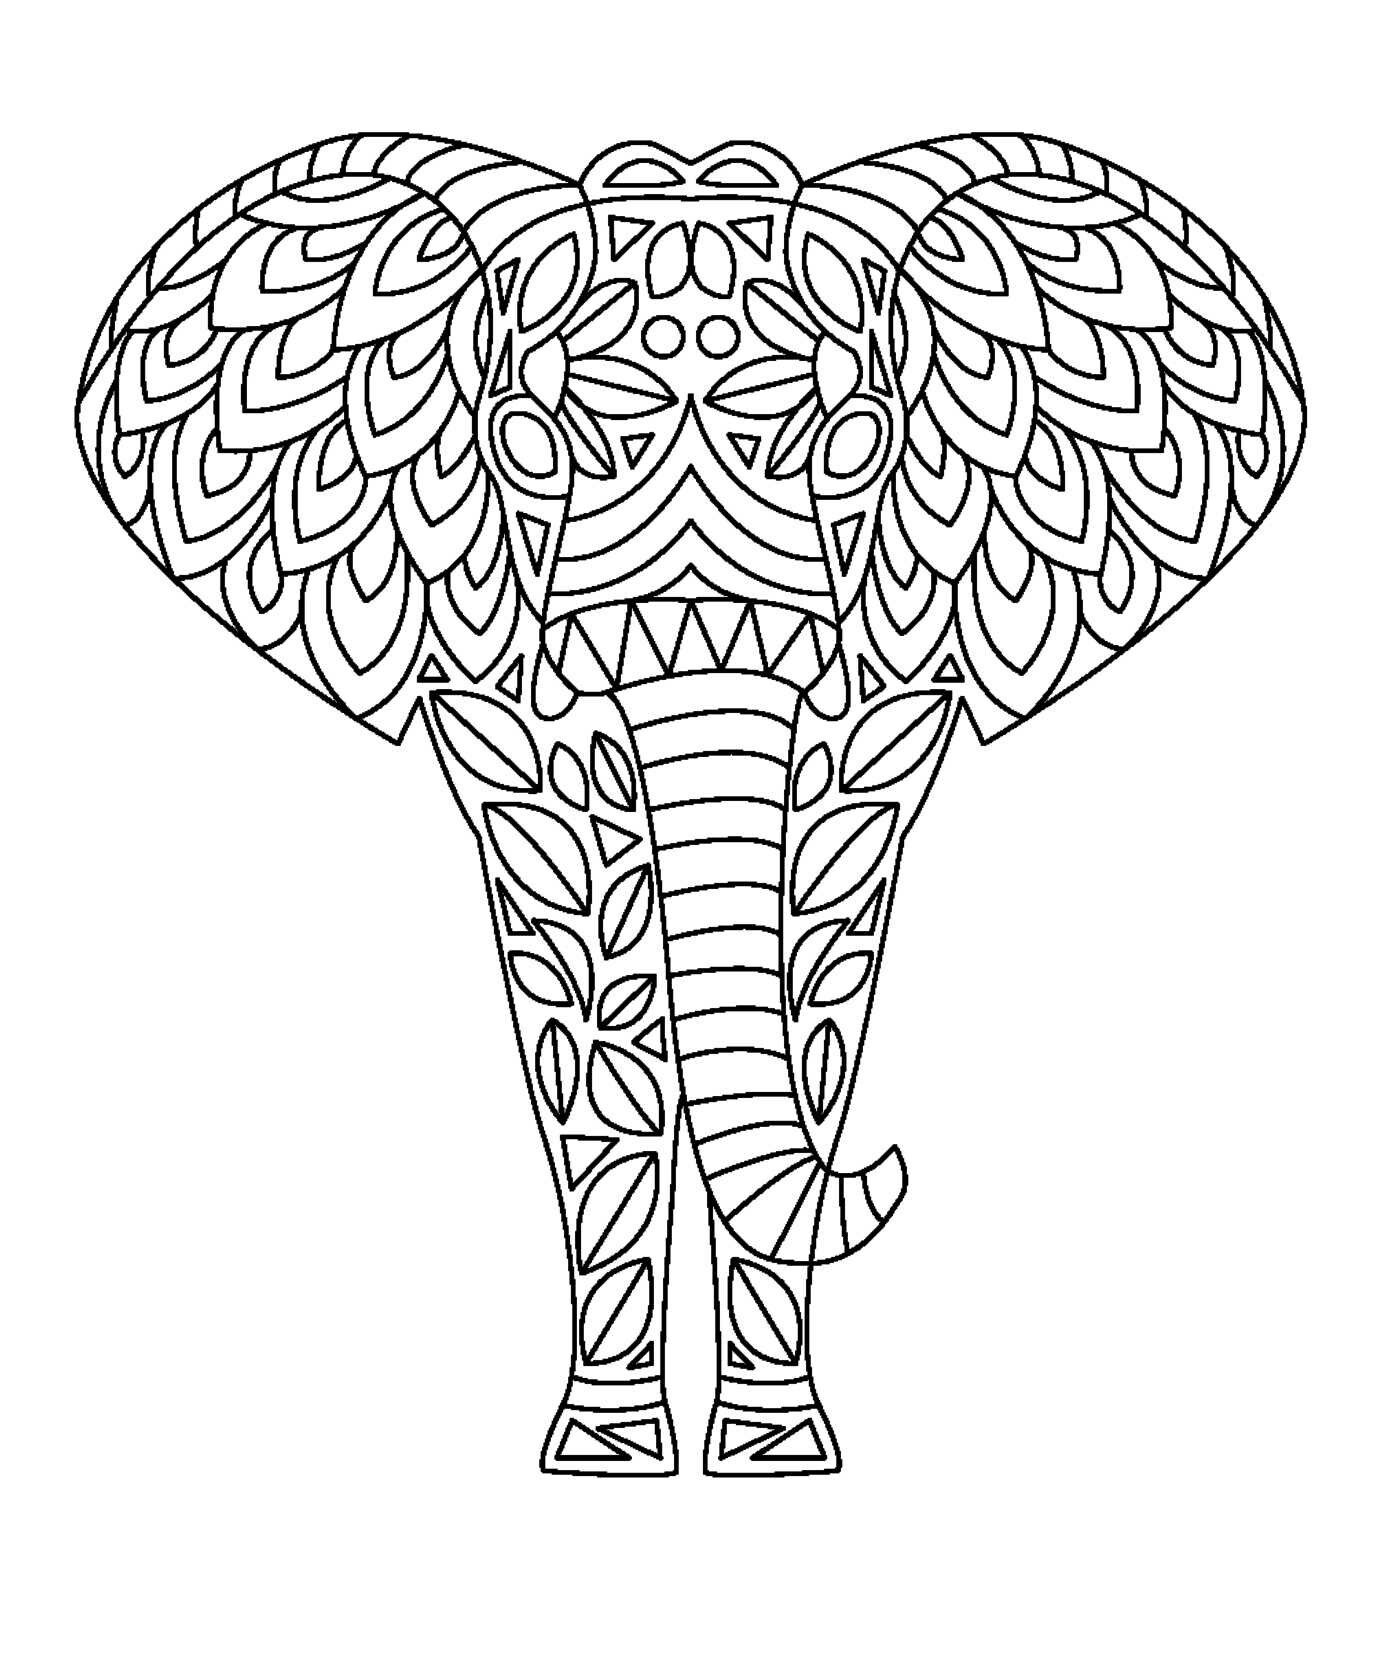 Elephant Coloring Page With Images Elephant Coloring Page